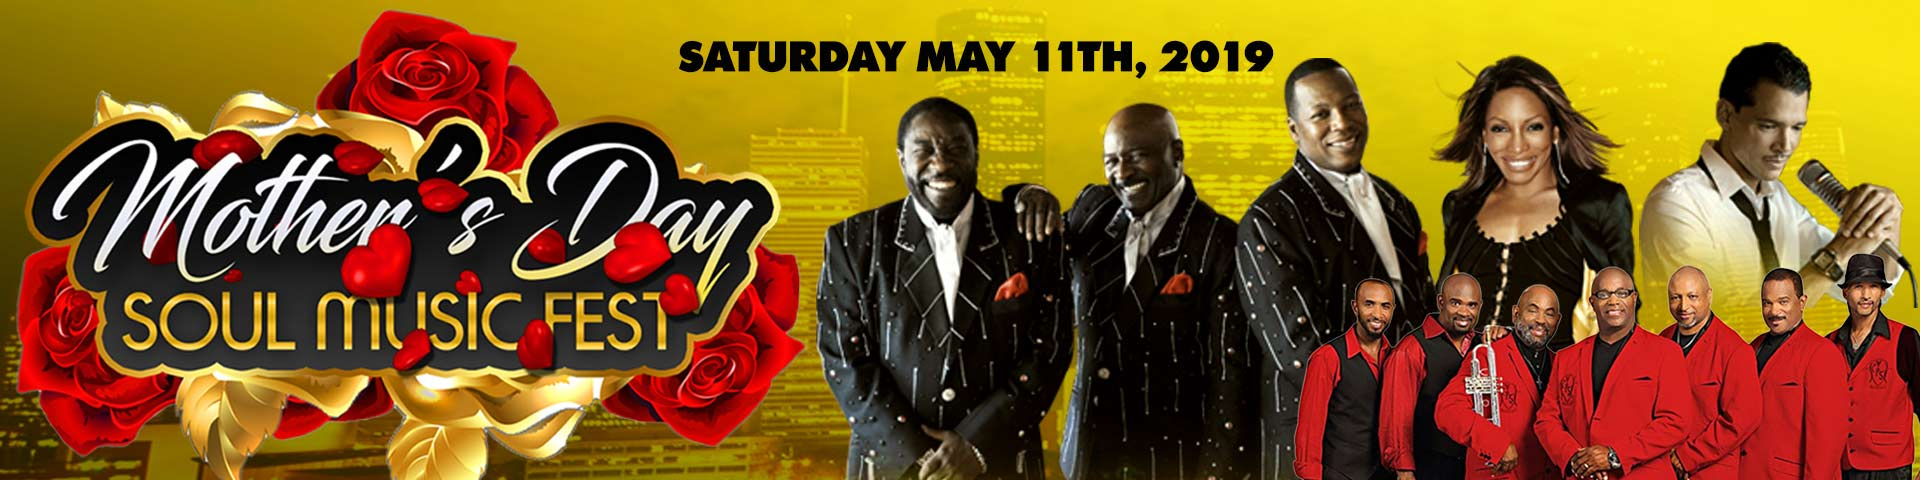 Mother's Day Soul Music Fest Feat  The O'Jays, Stephanie Mills, and